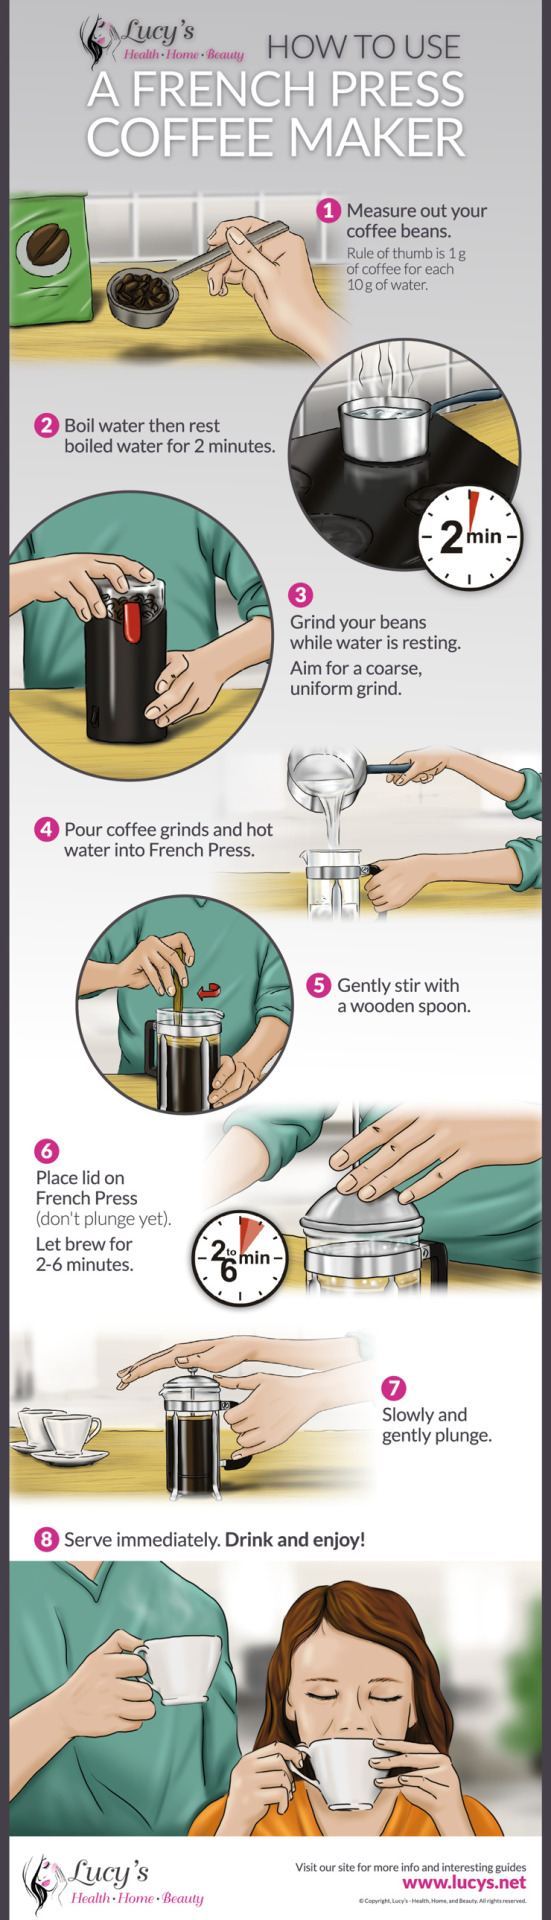 Best French Press Coffee Maker Cooks Illustrated : How To Use a French Press Coffee Maker [INFOGRAPHIC]